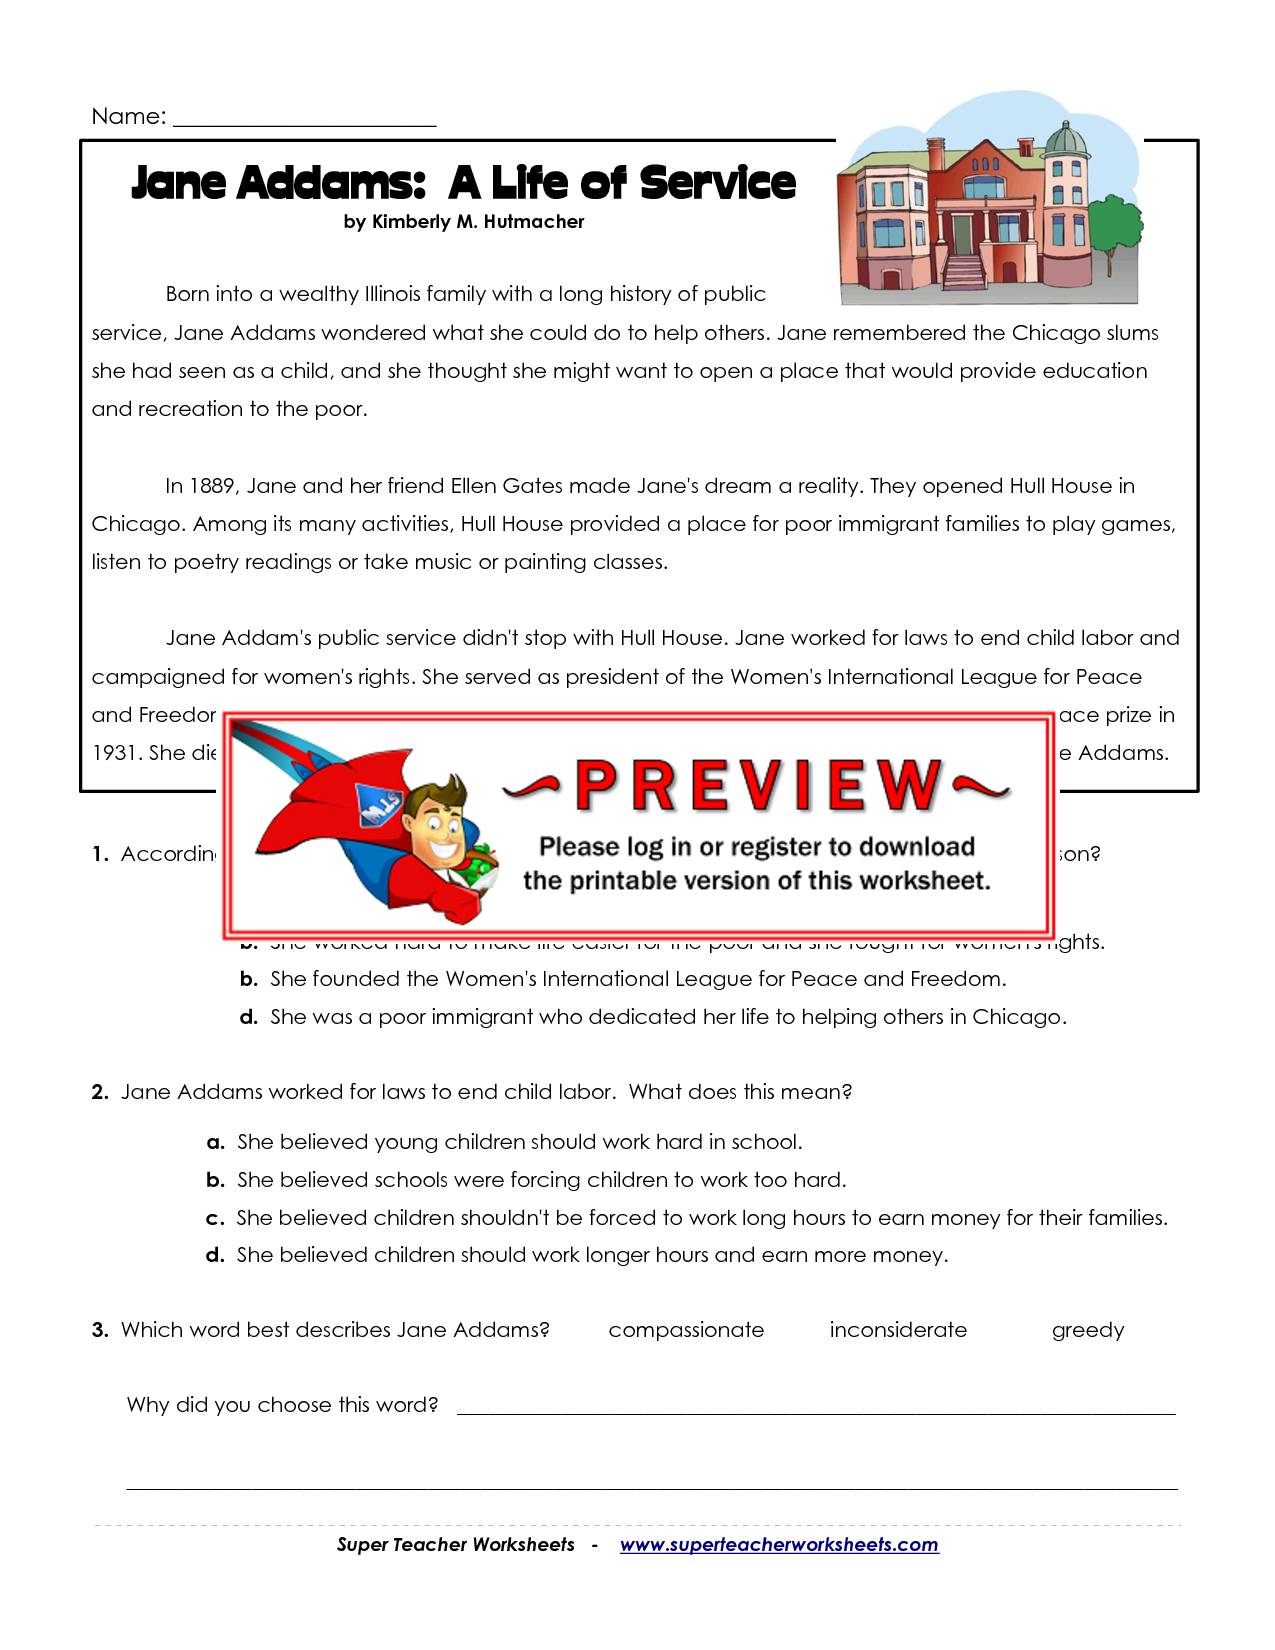 Jane Addams A Life of Service - Super Teacher Worksheets   Super teacher  worksheets [ 1650 x 1275 Pixel ]